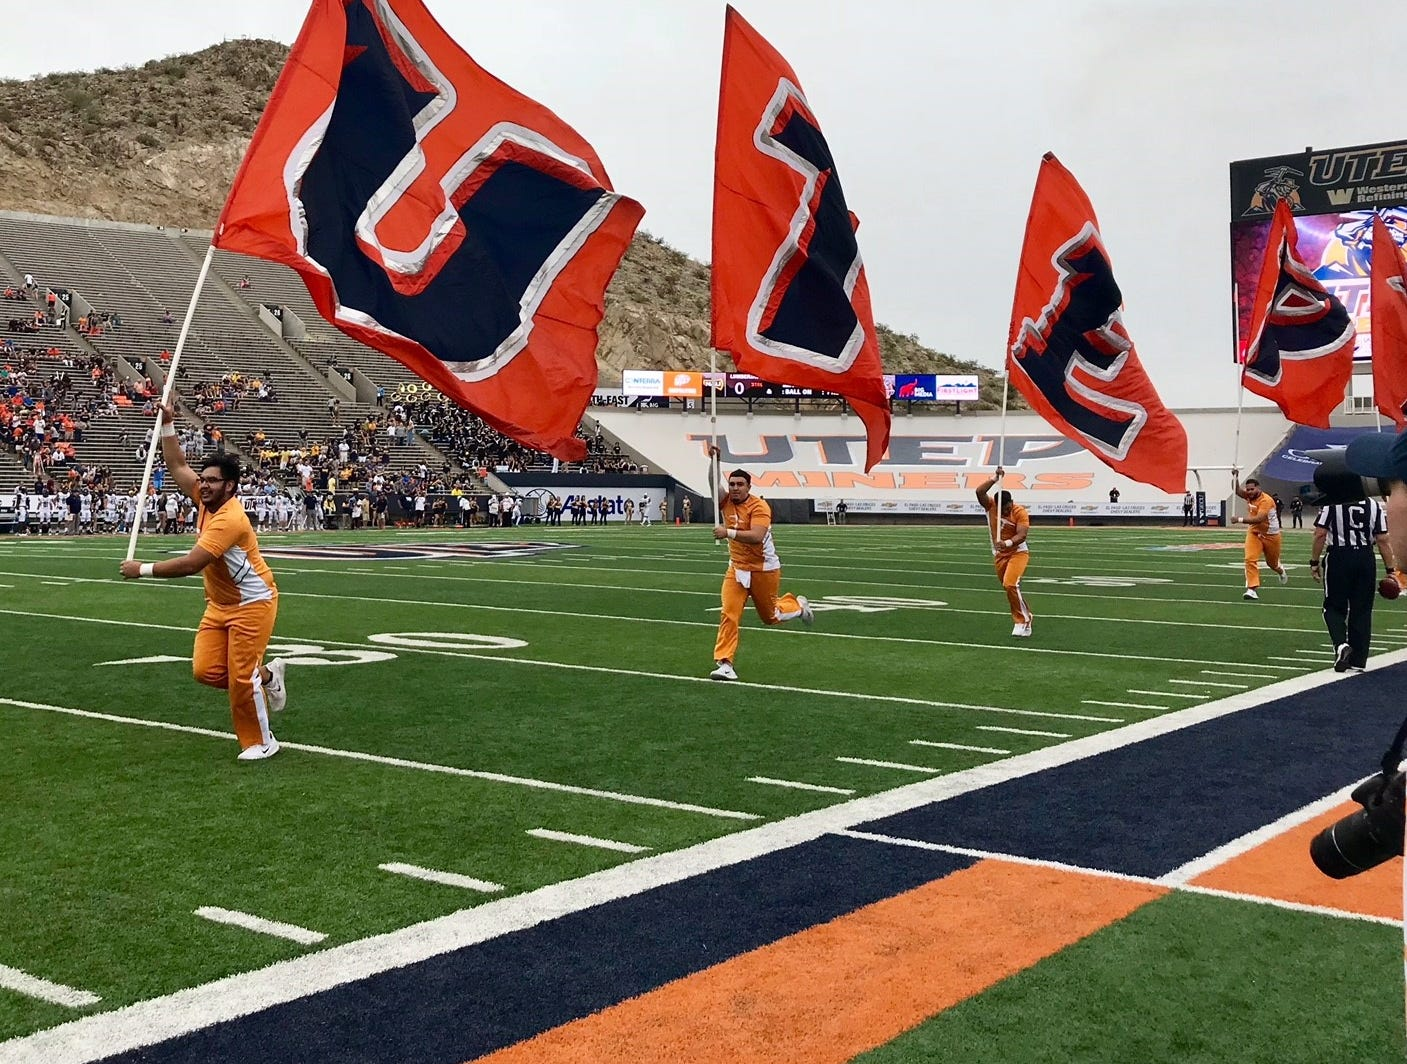 UTEP football gets underway at the Sun Bowl as the Miners take on the Northern Arizona University Lumberjacks.